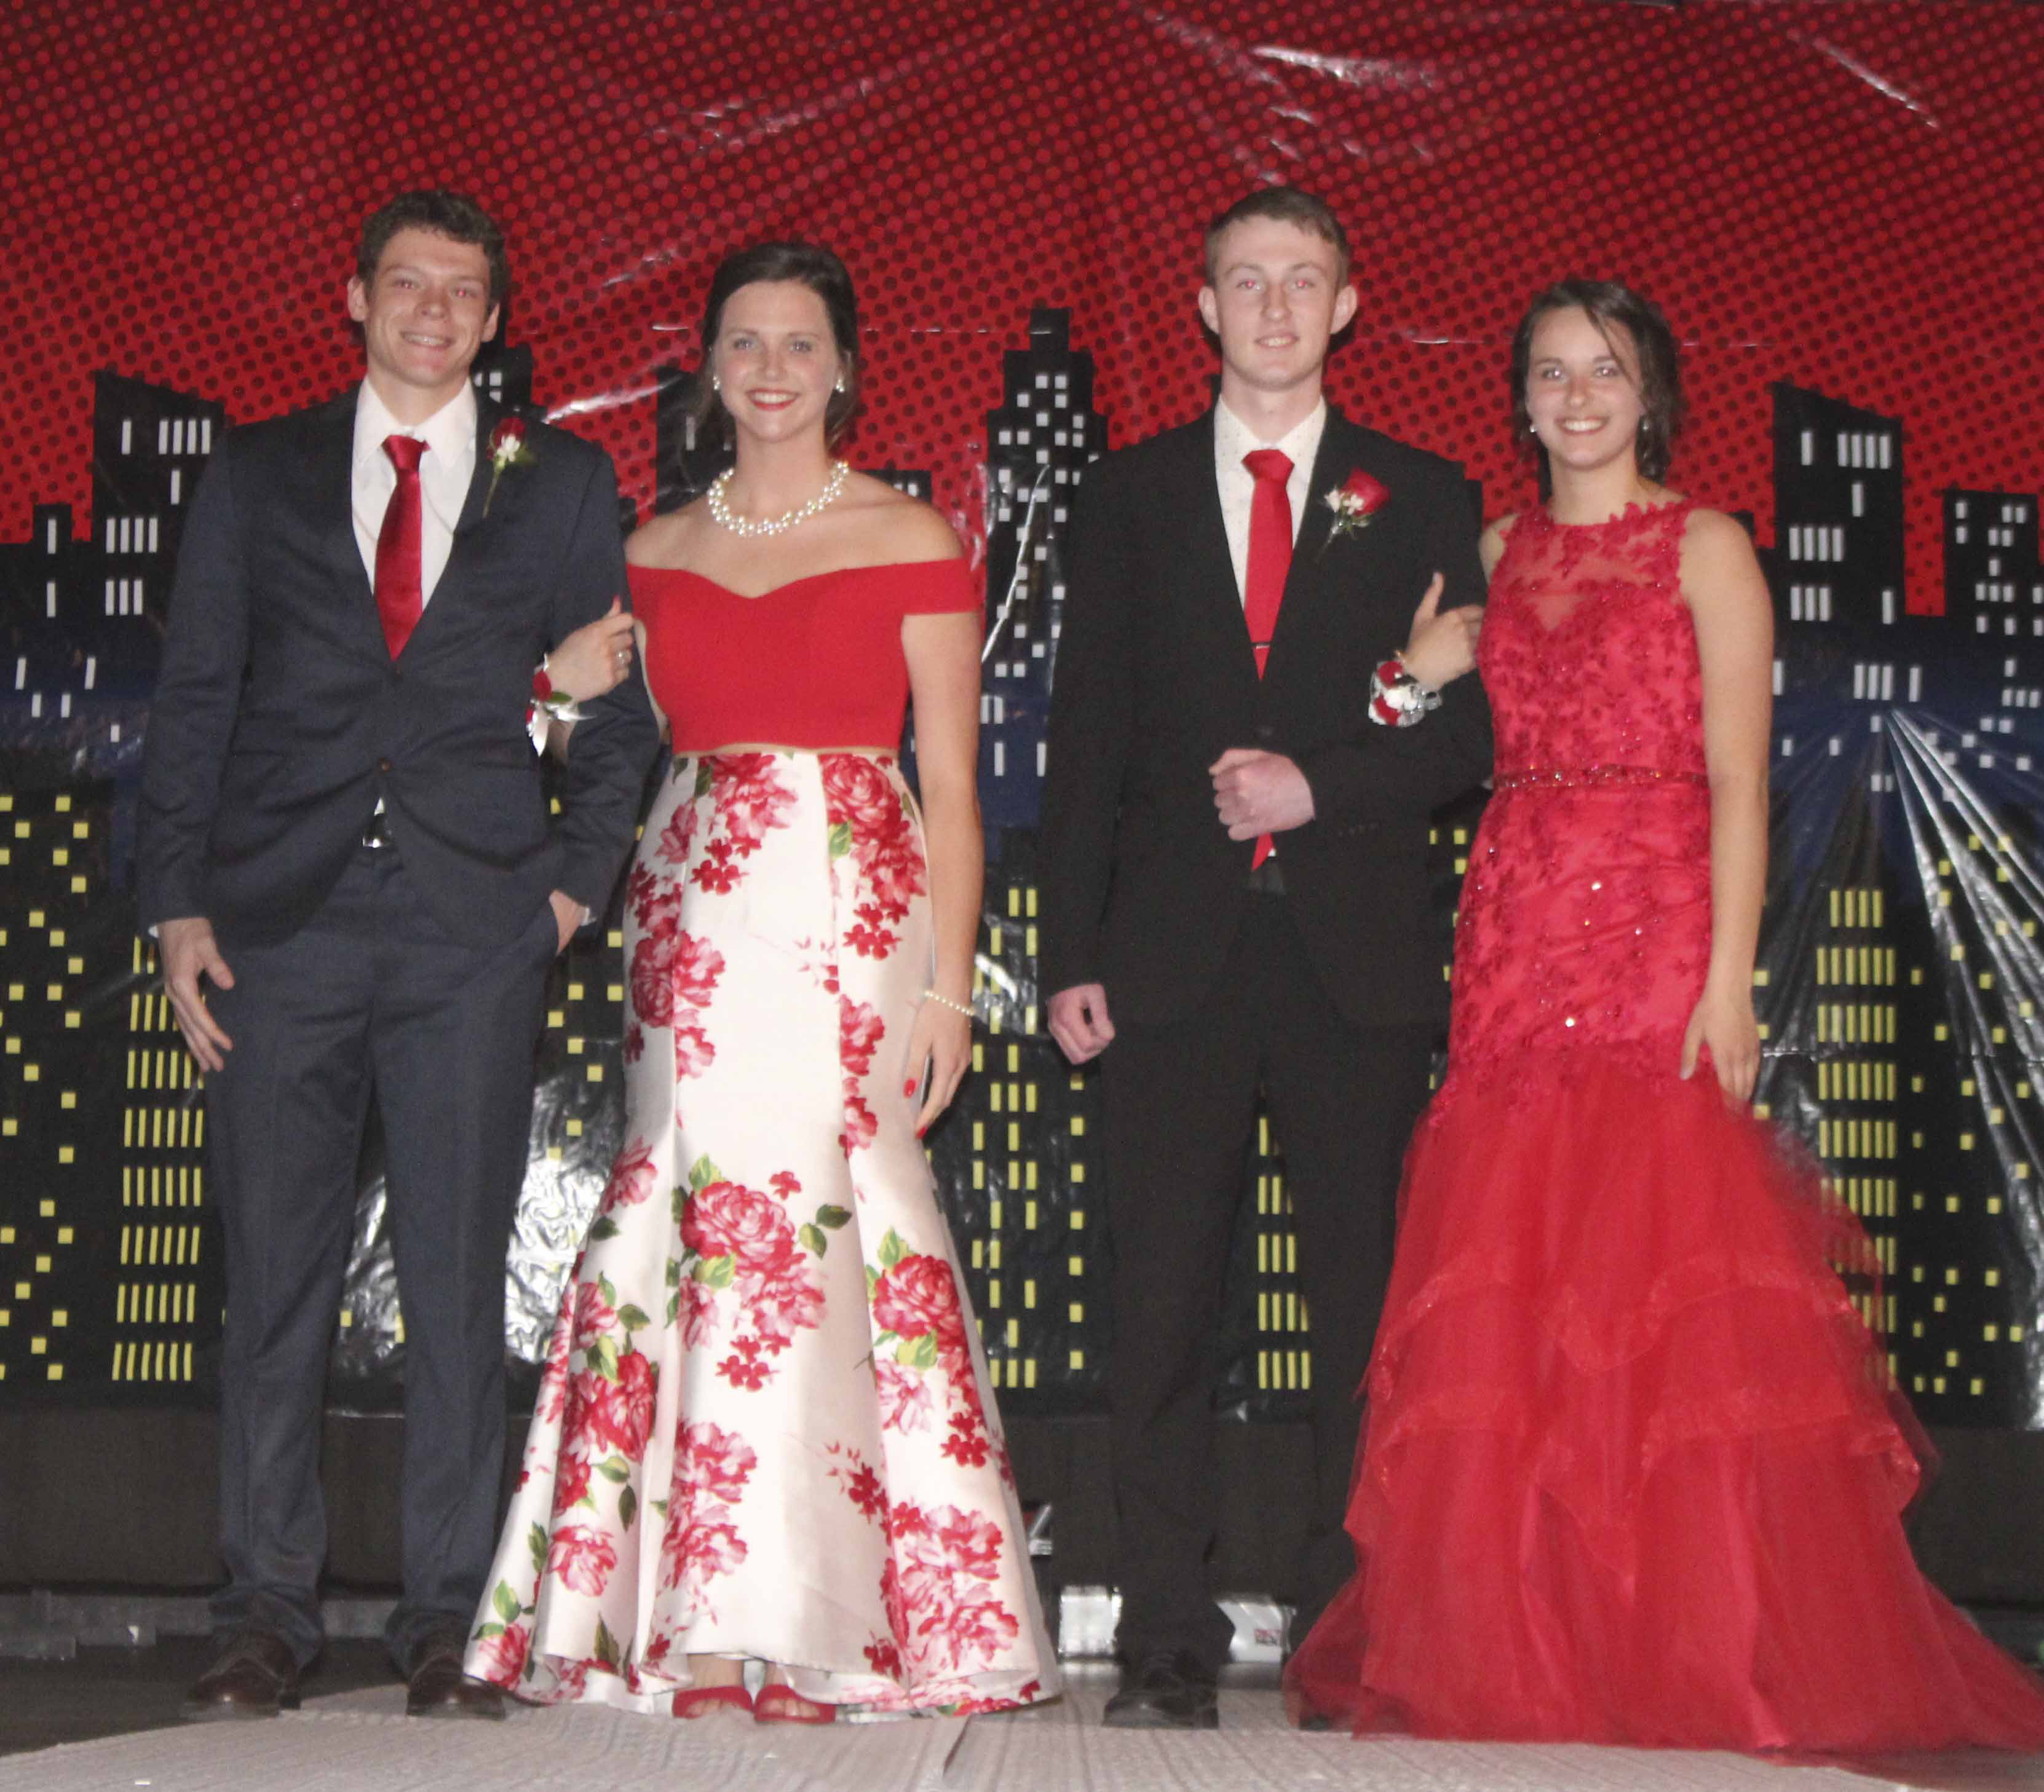 Also participating in the Grand March, from left: Mason Newhard, Rileigh Lambert, Connor Harms and Maria Recker.